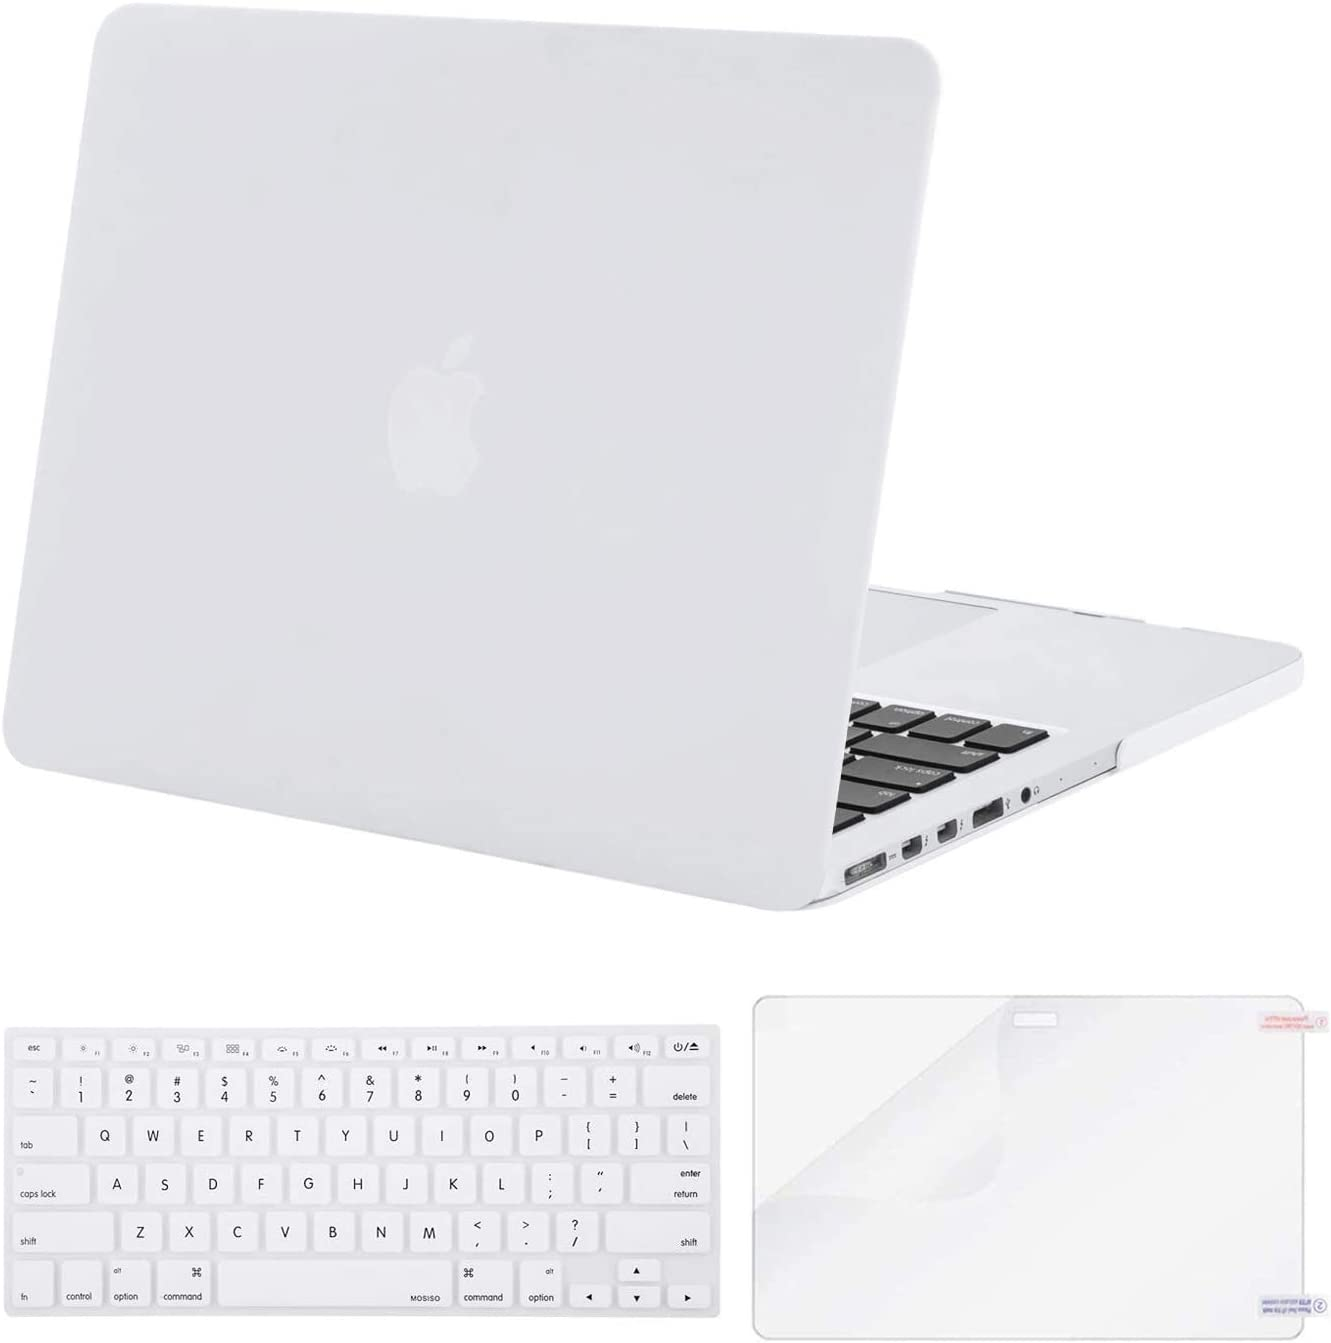 MOSISO Case Only Compatible with Older Version MacBook Pro Retina 13 inch (Models: A1502 & A1425) (Release 2015 - end 2012), Plastic Hard Shell Case & Keyboard Cover & Screen Protector, White